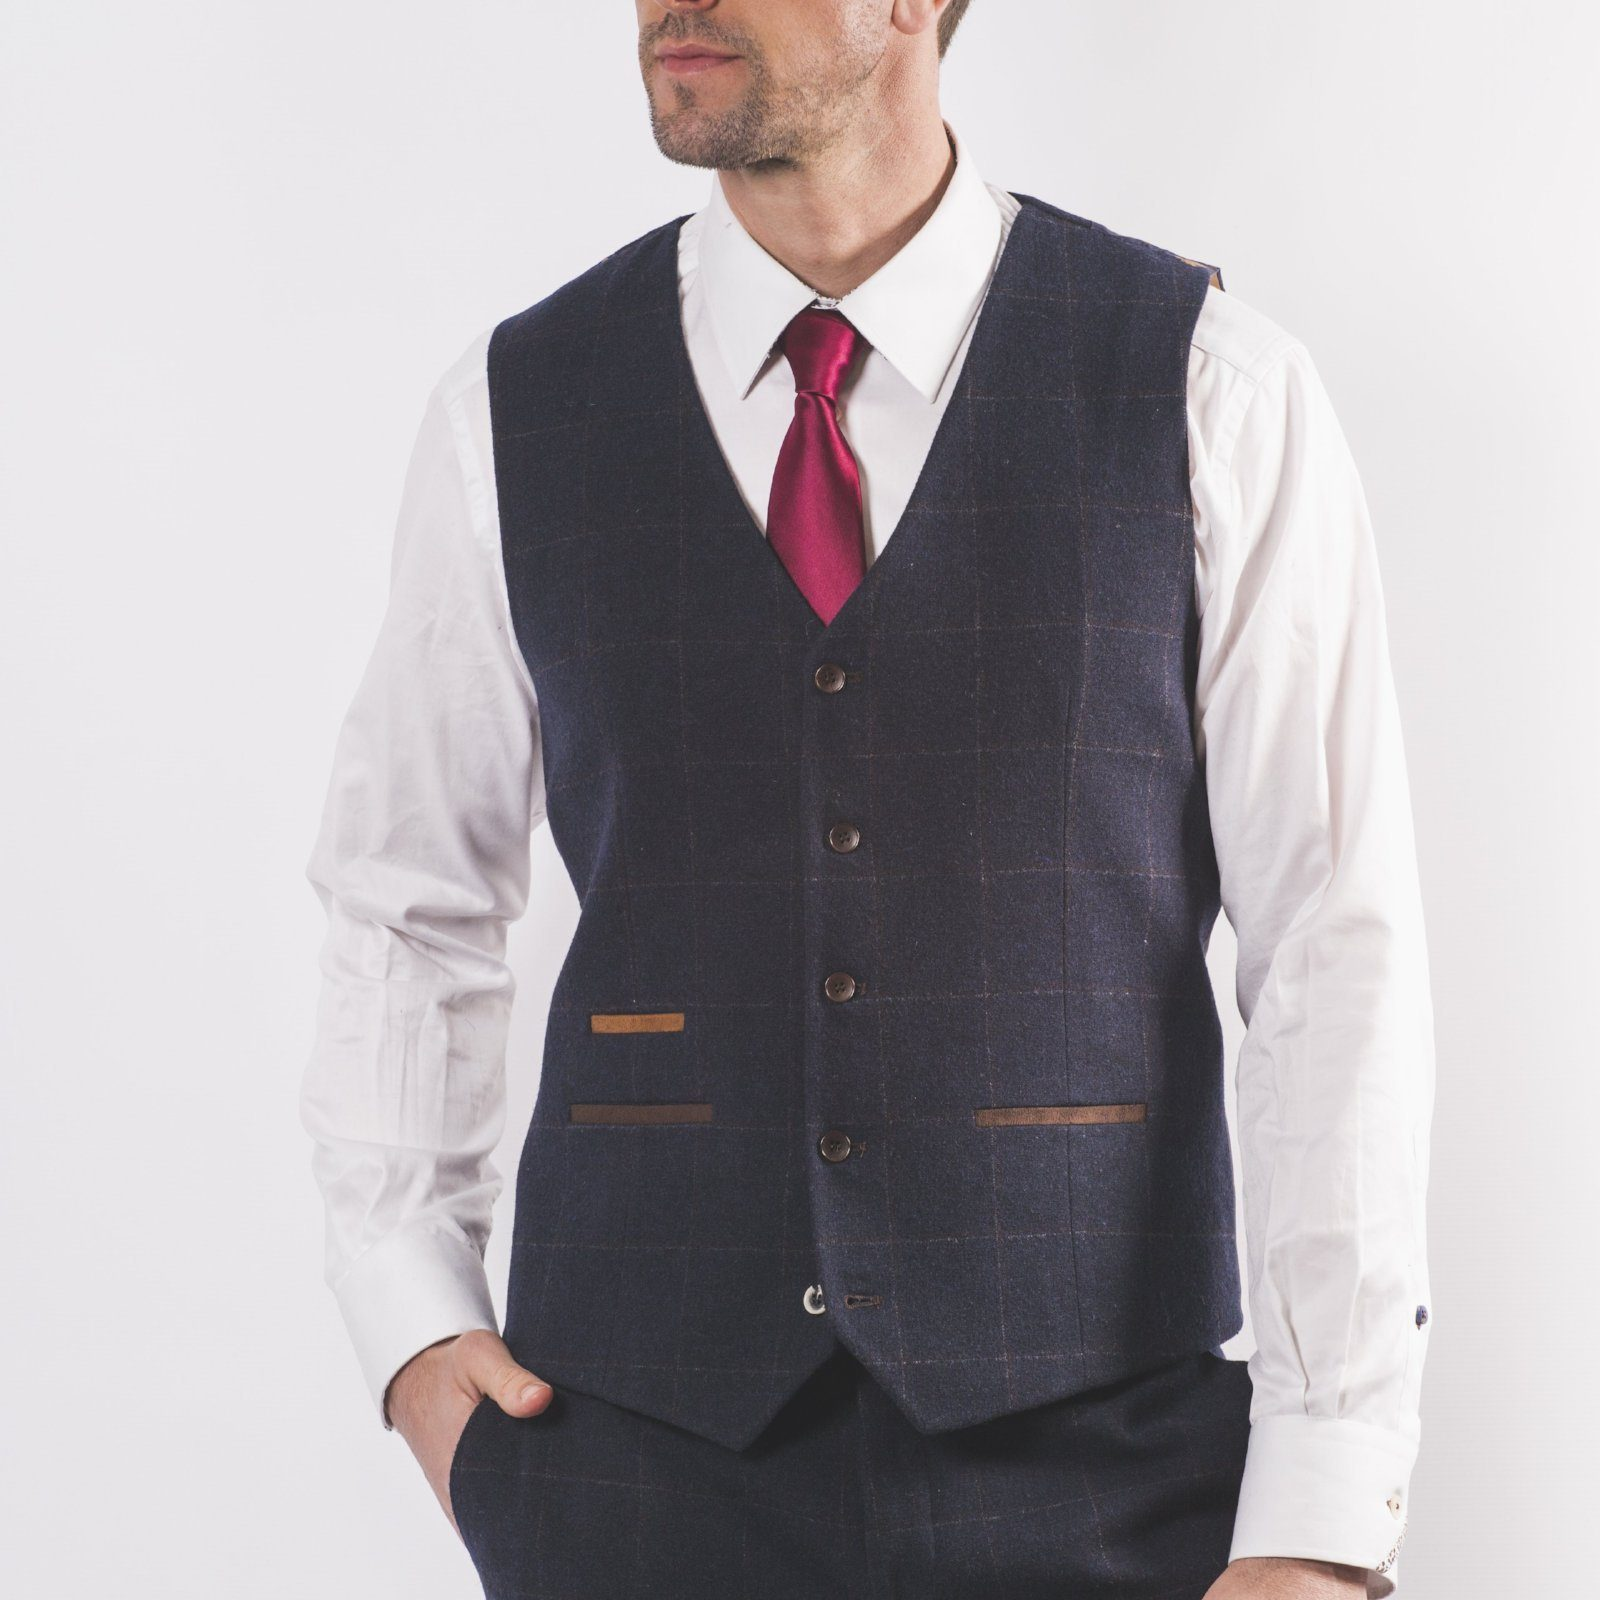 Navy Wool Mix Windowpane Waistcoat - Leonard Silver